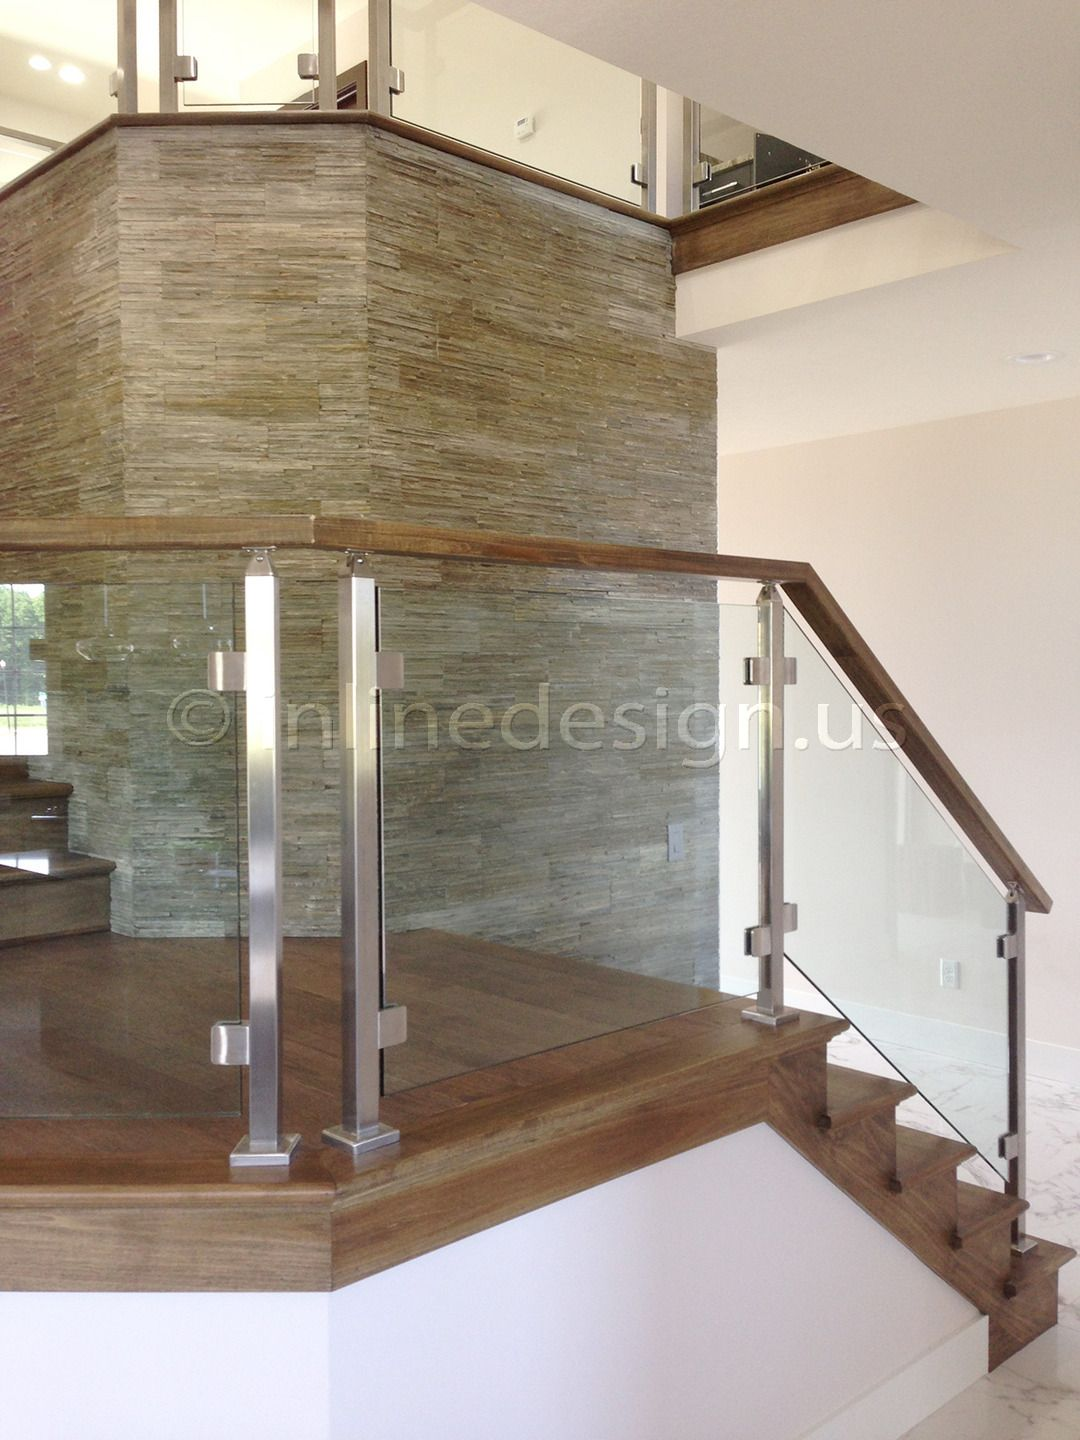 Best Single Stainless Steel Glass Railing Stairs Side For The 640 x 480